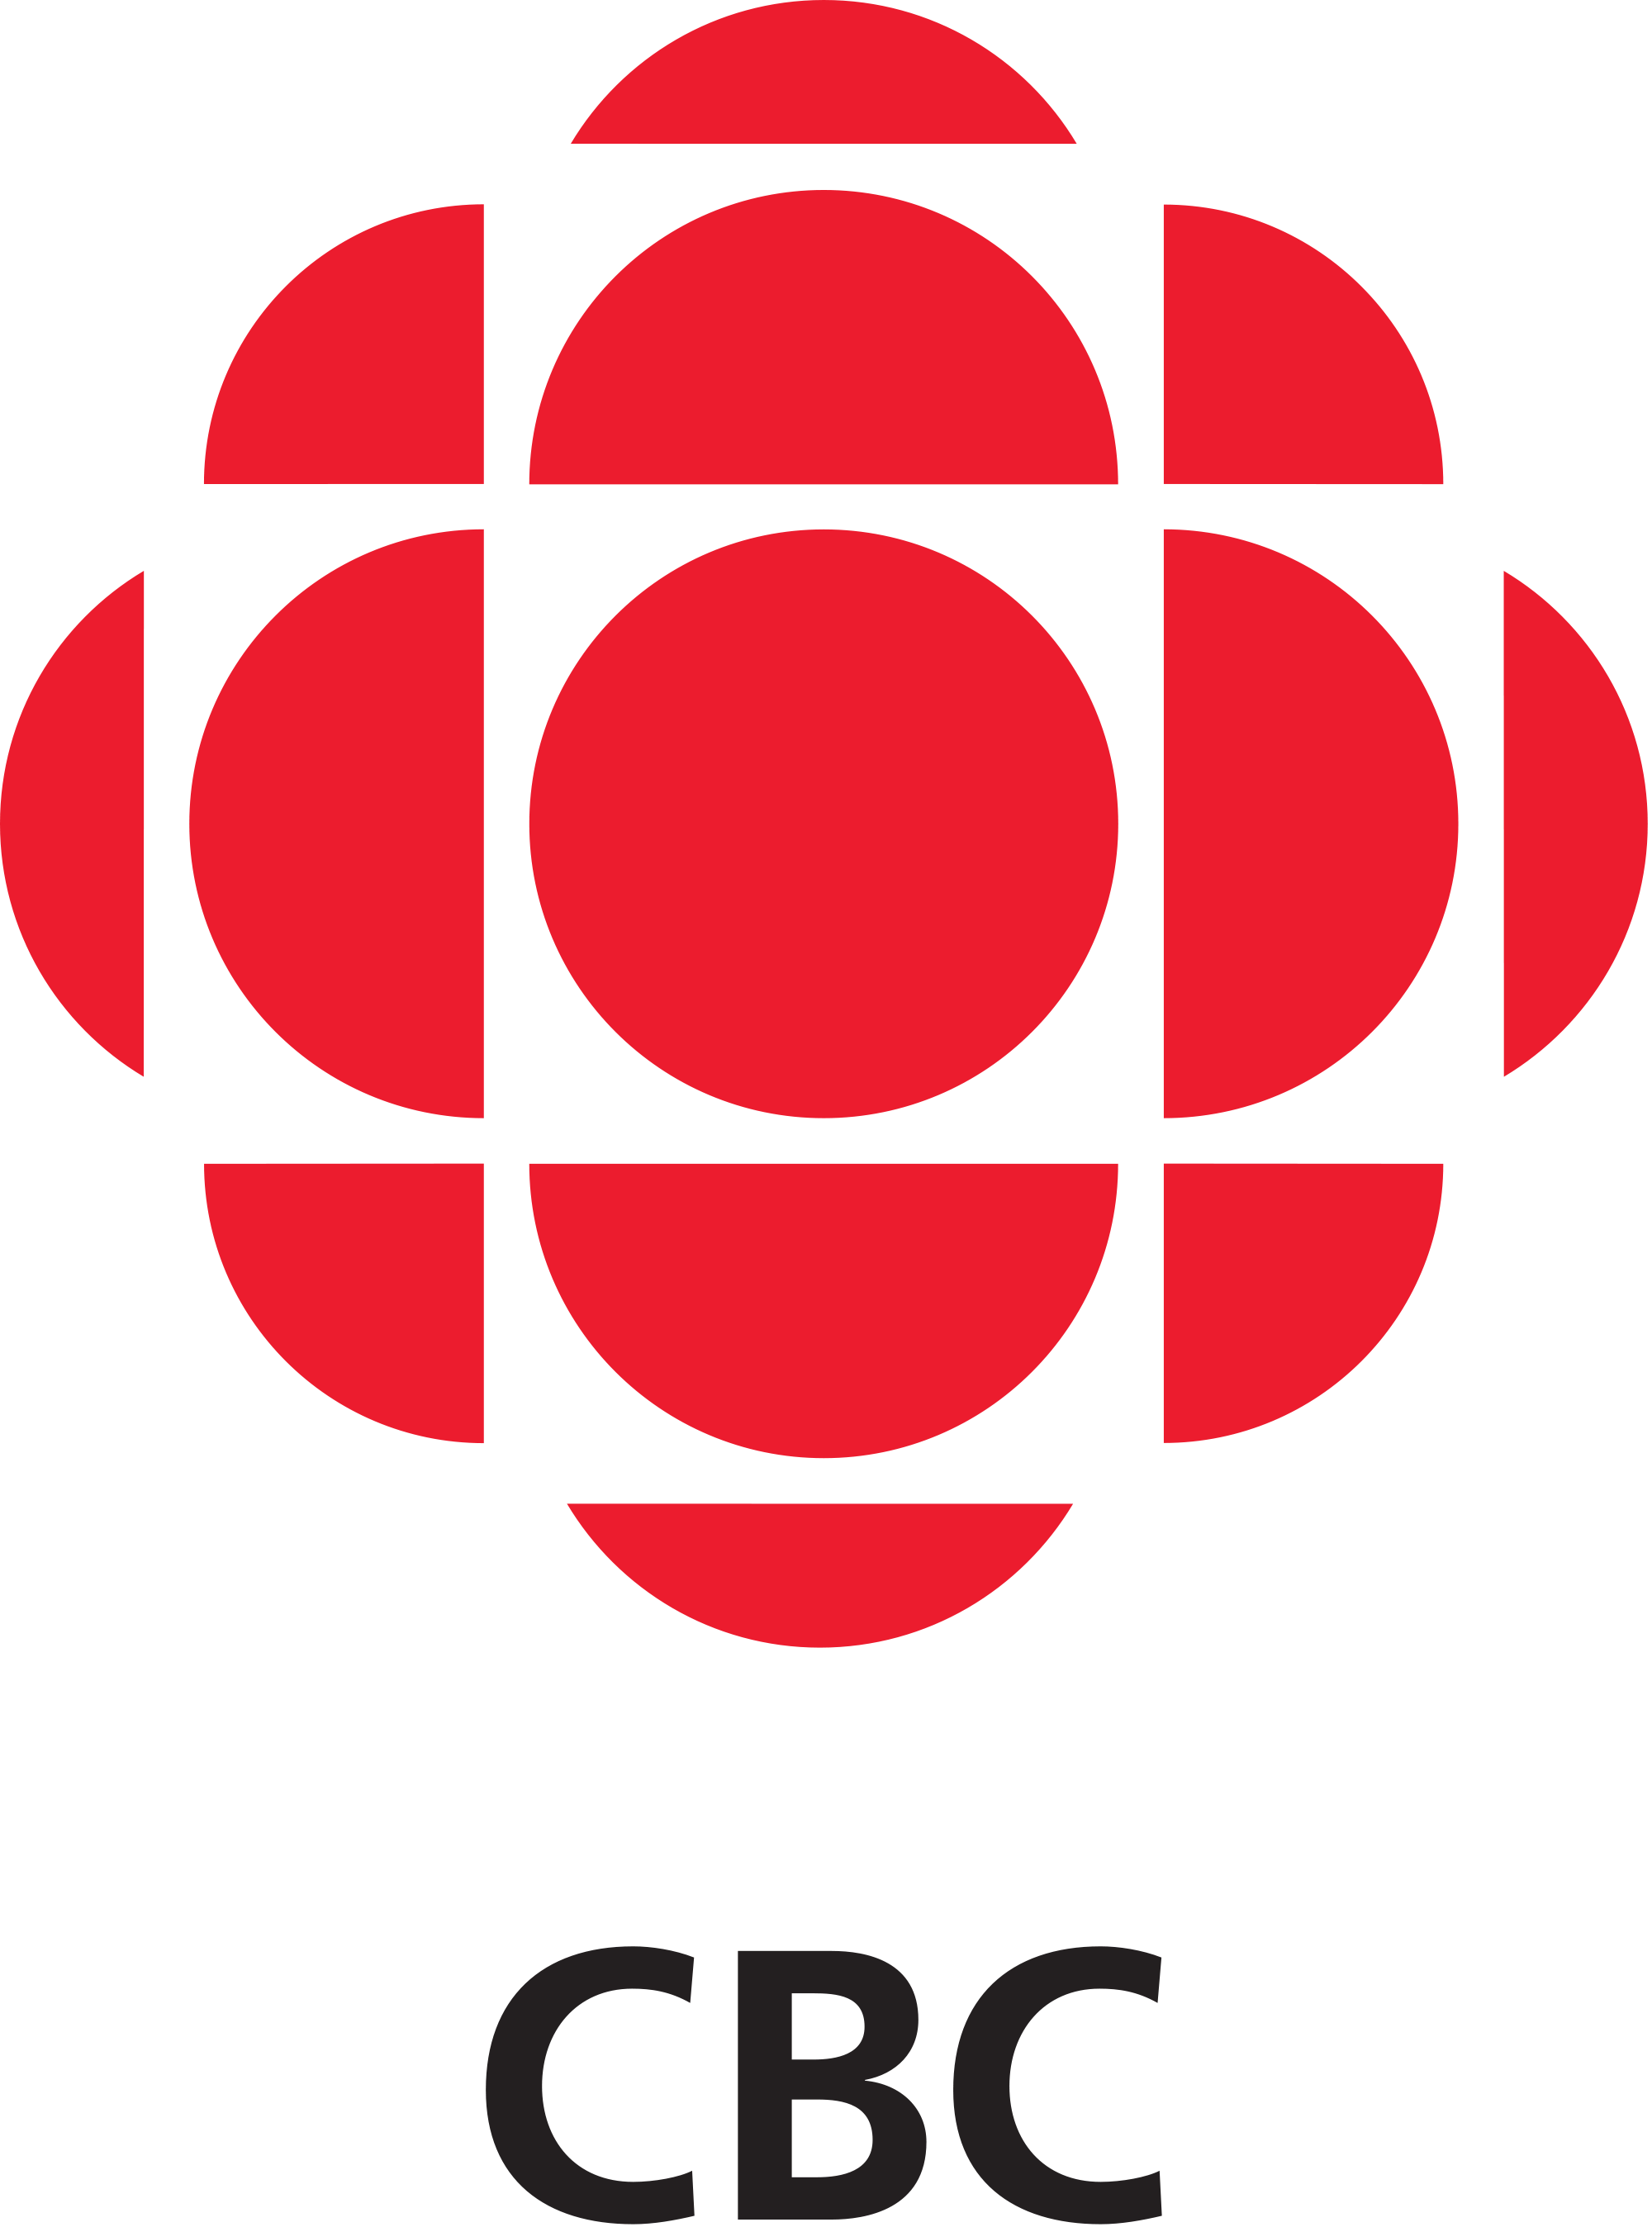 canadian broadcasting corporation Canadian broadcasting corporation in thompson, reviews by real people yelp is a fun and easy way to find, recommend and talk about what's great and not so great in thompson and beyond.